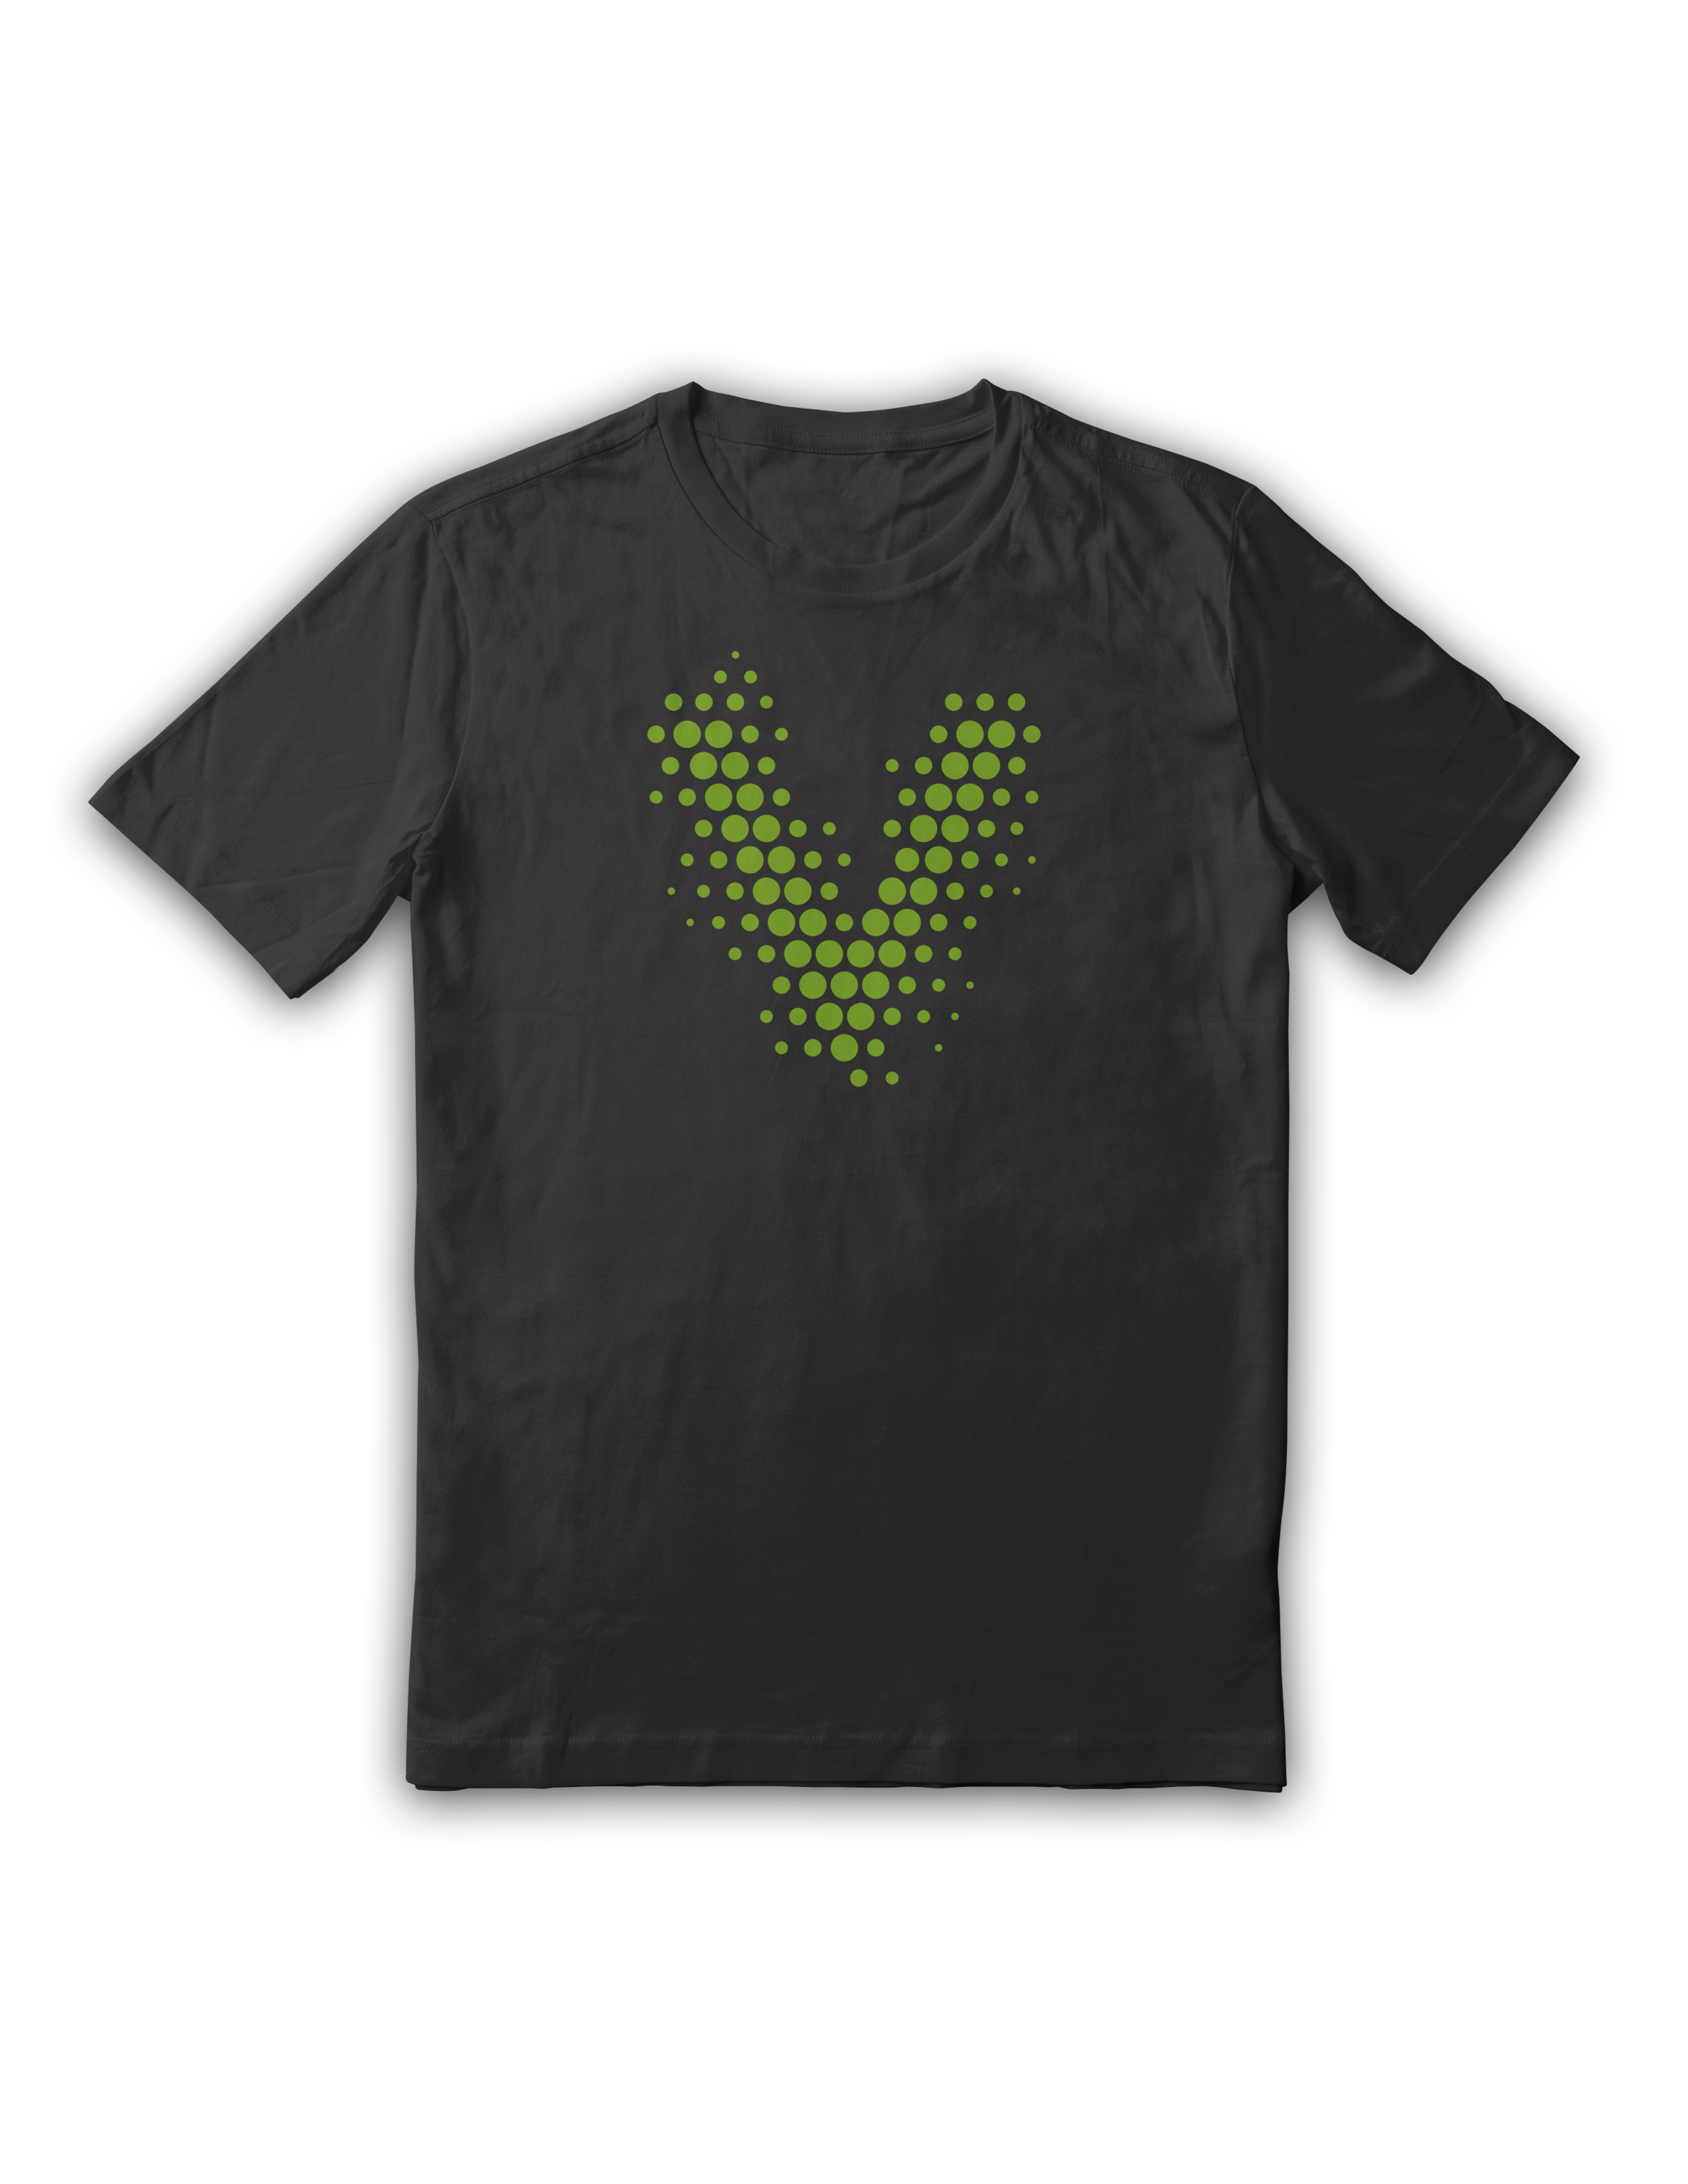 Design-and-Architecture_Branding_Visionary-Effects_Bootstrap-Design-Co_T-shirt.png